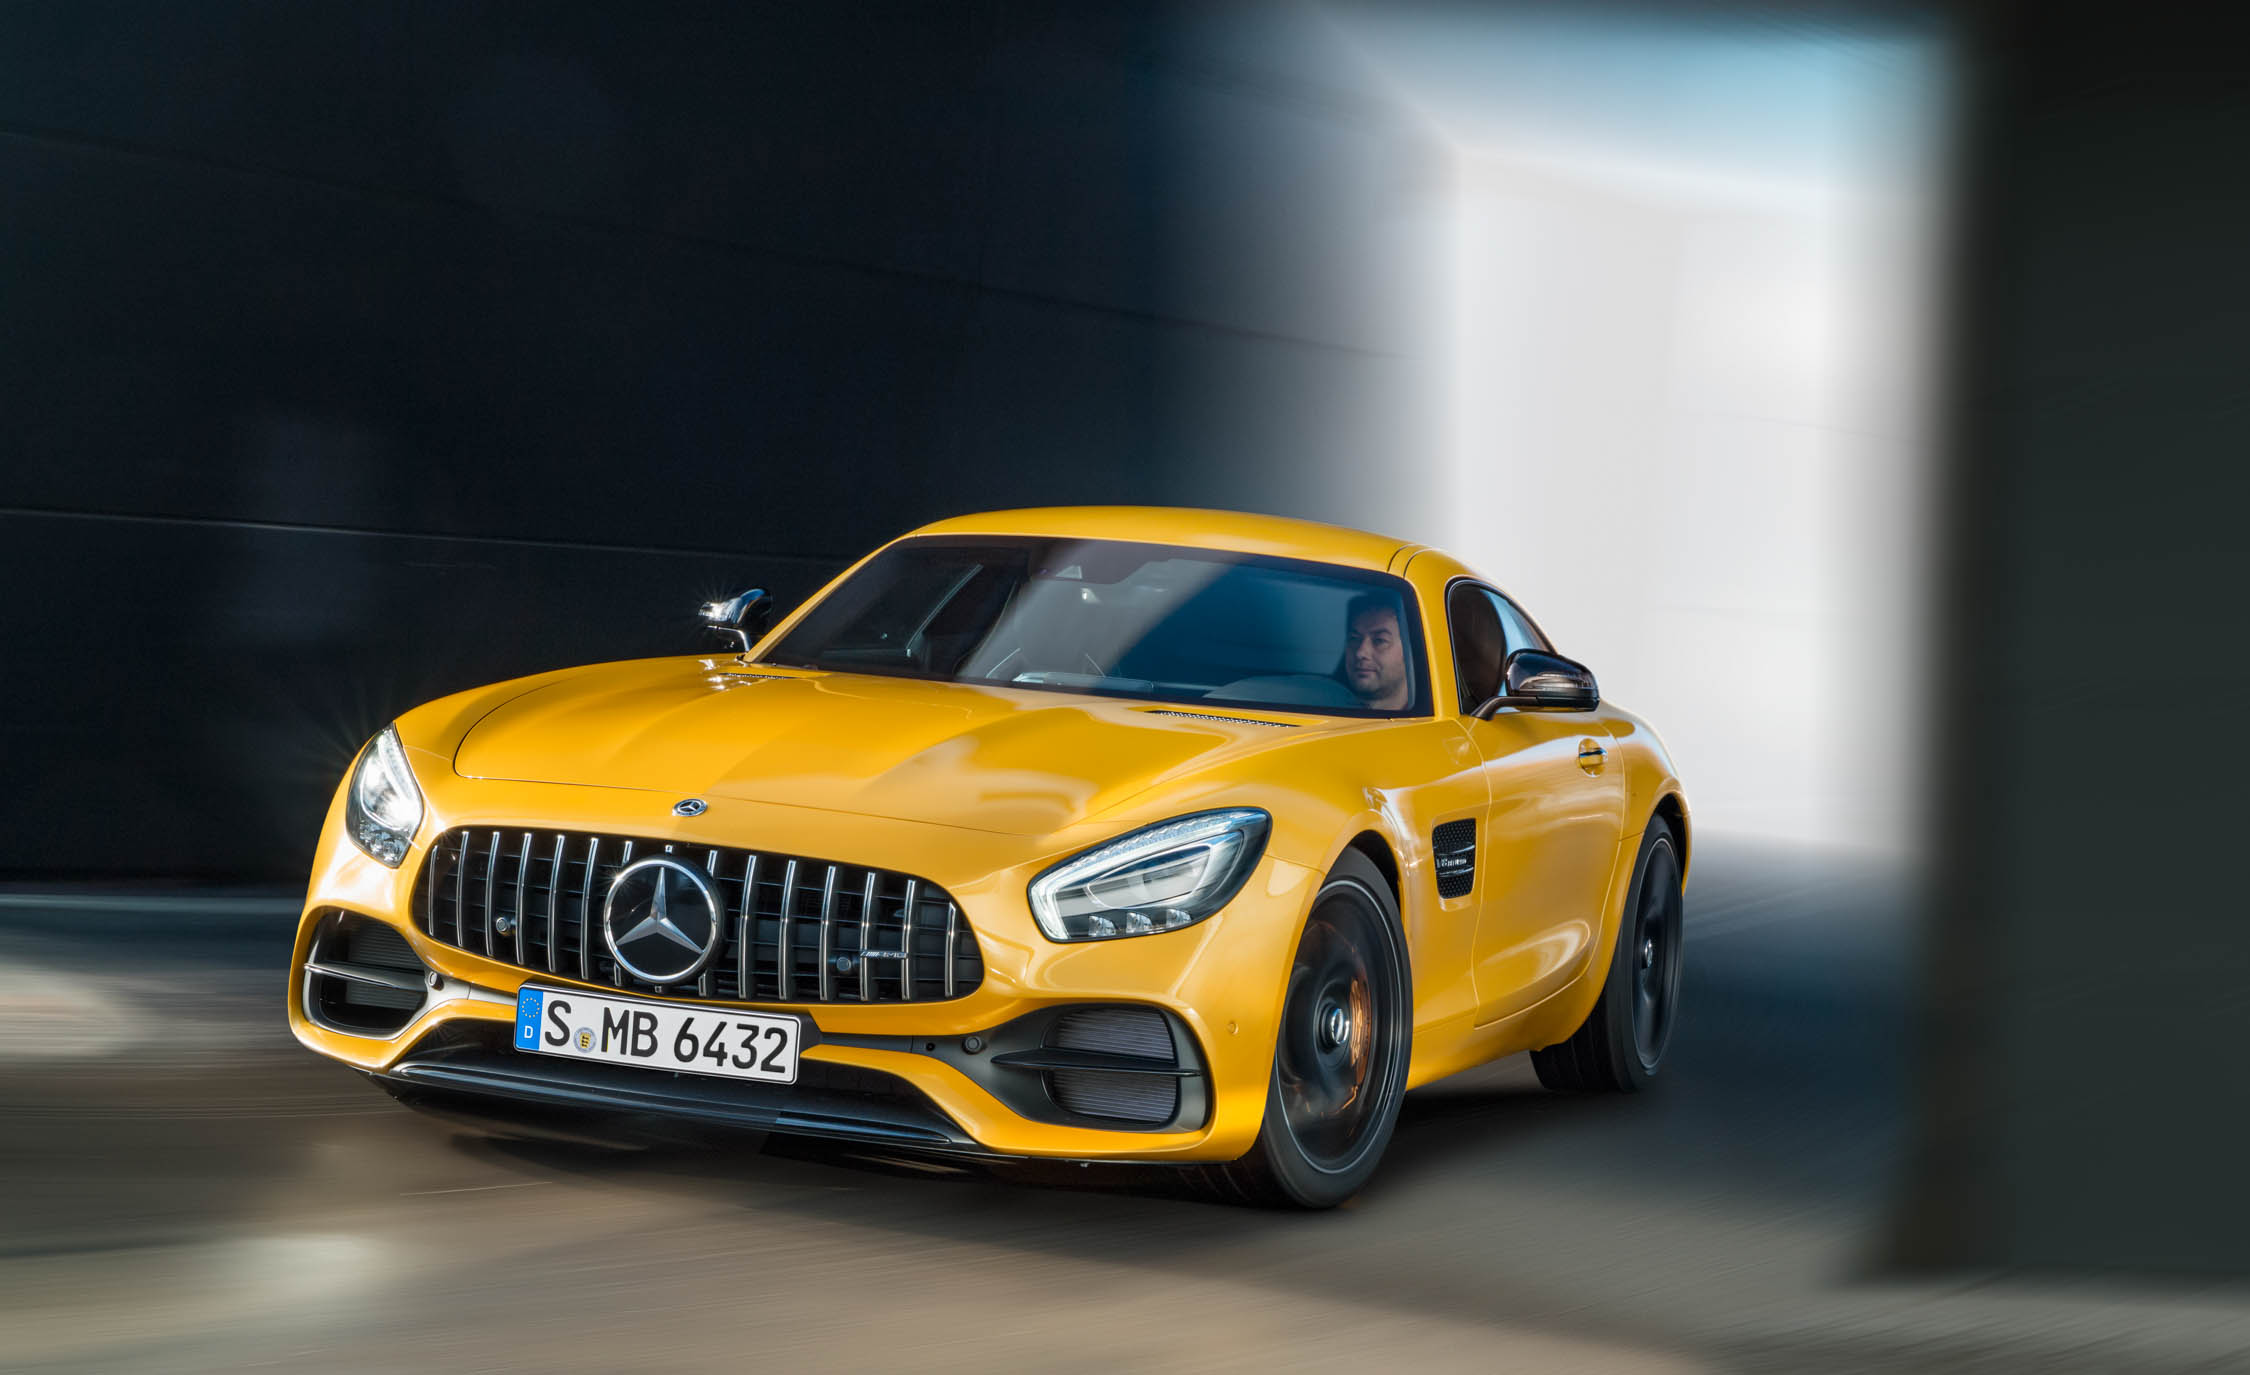 2018 Mercedes Amg Gt S Exterior Yellow (View 5 of 23)